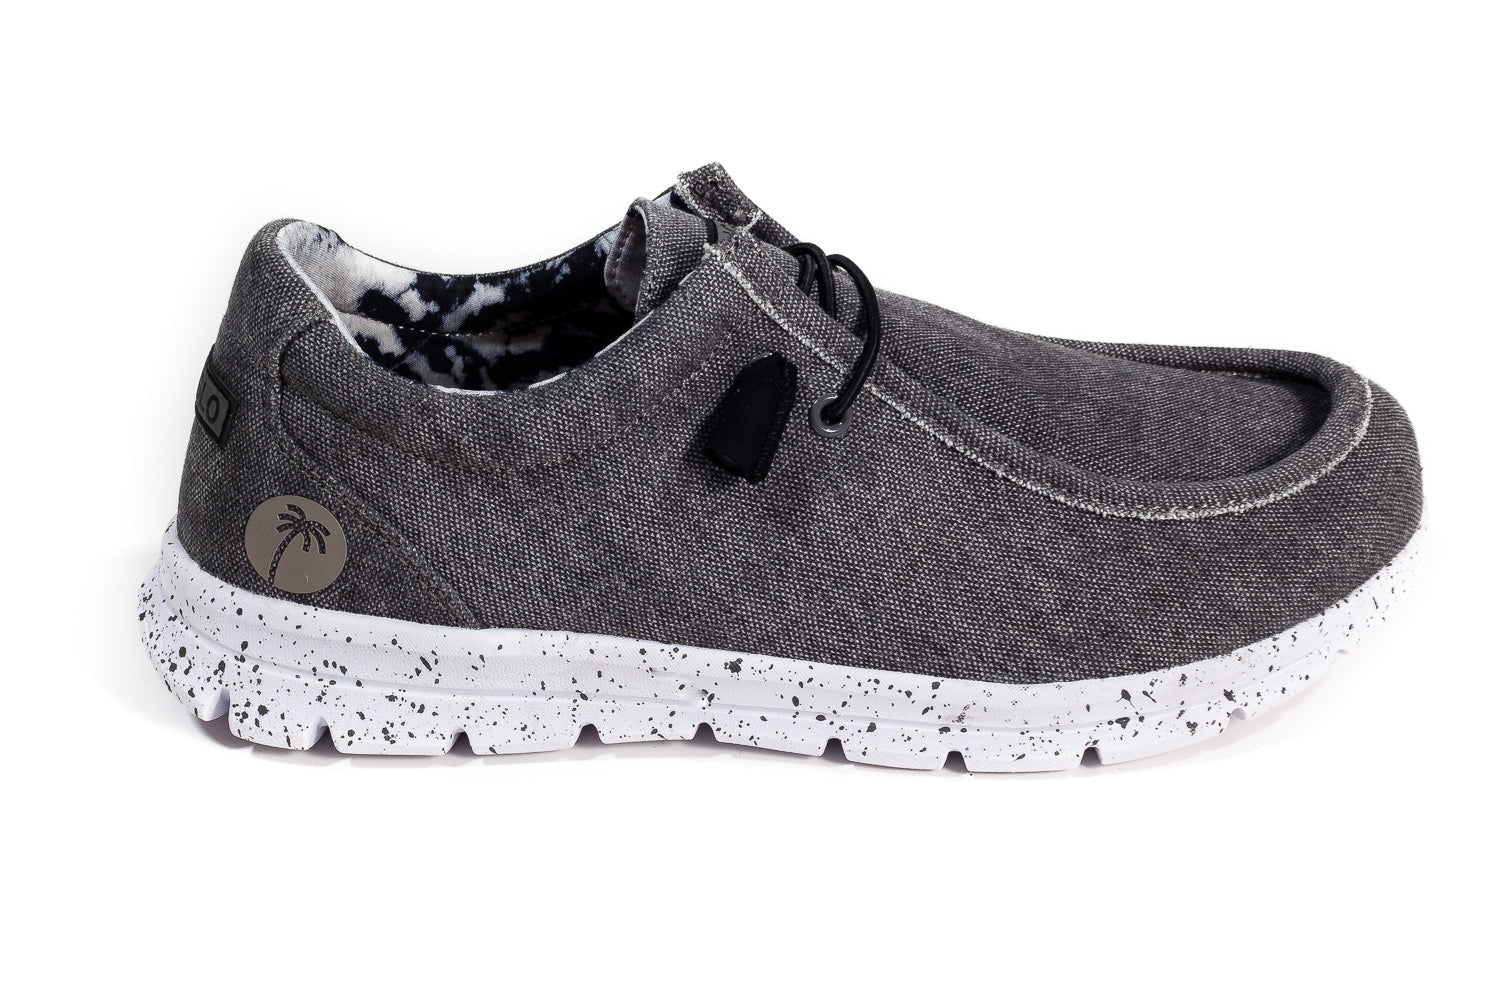 Scarpa JUNGLO Dark grey